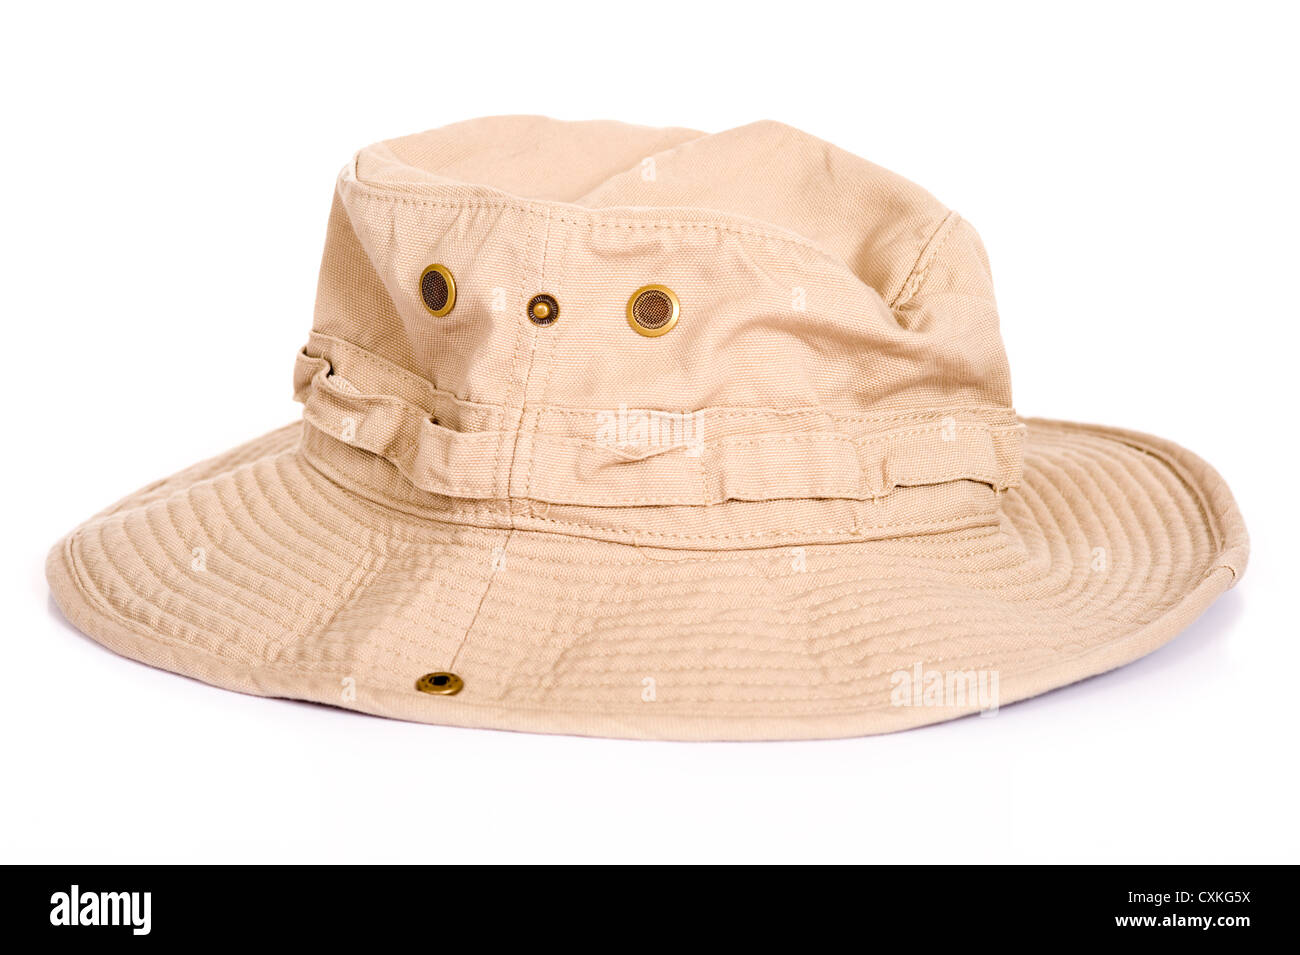 c96248f791fc3 A khaki brown Boonie hat or sun hat on a white background with copy space -